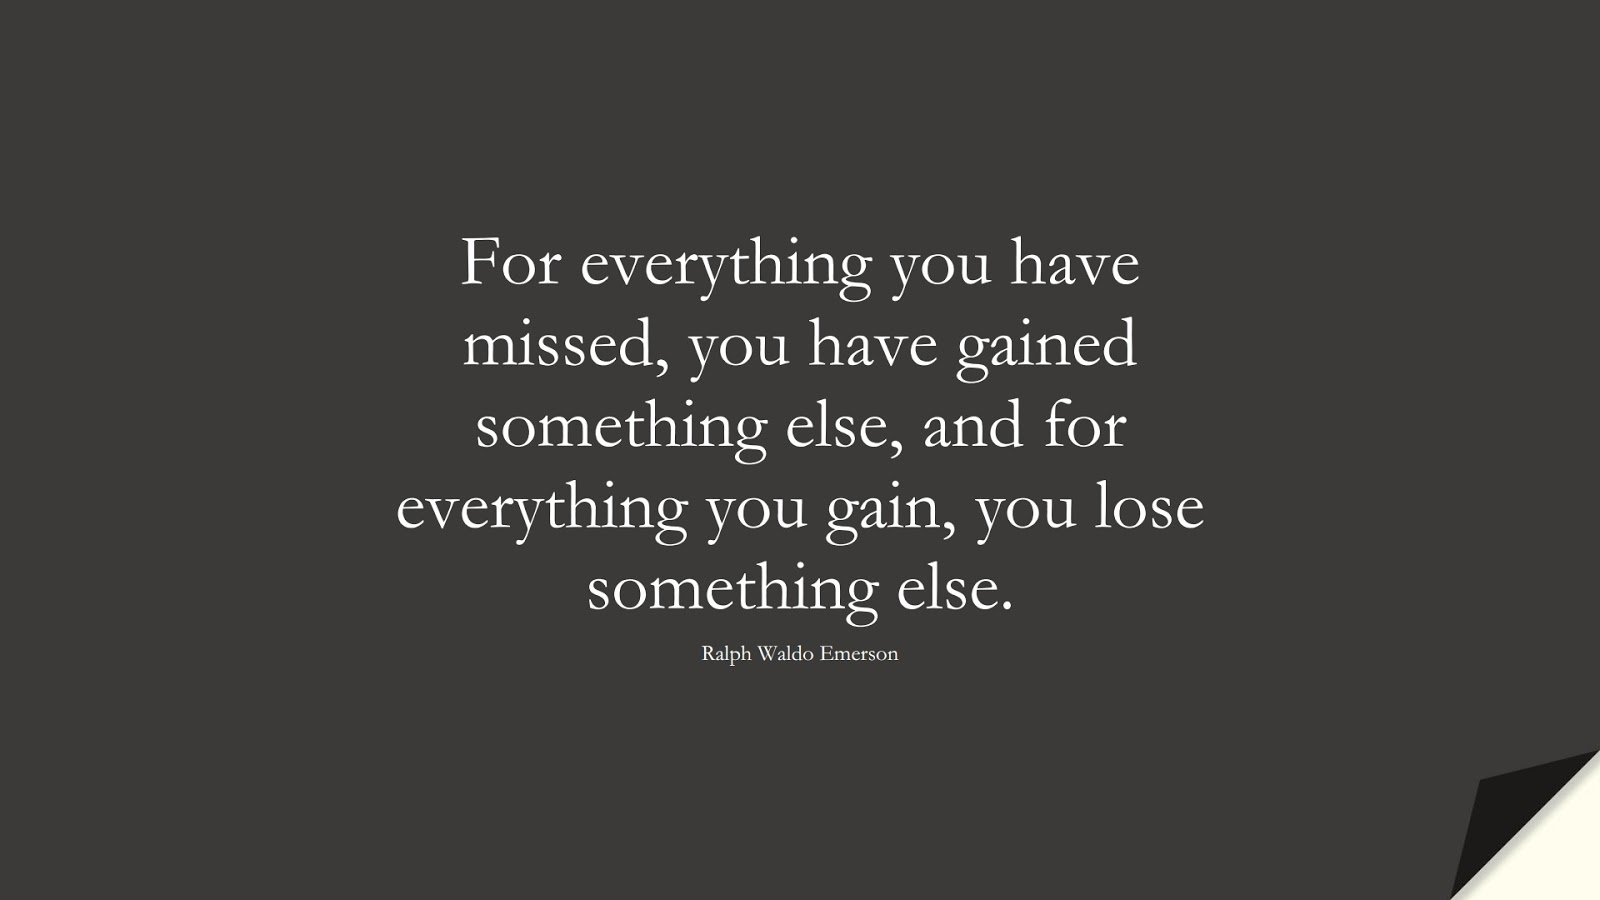 For everything you have missed, you have gained something else, and for everything you gain, you lose something else. (Ralph Waldo Emerson);  #WordsofWisdom